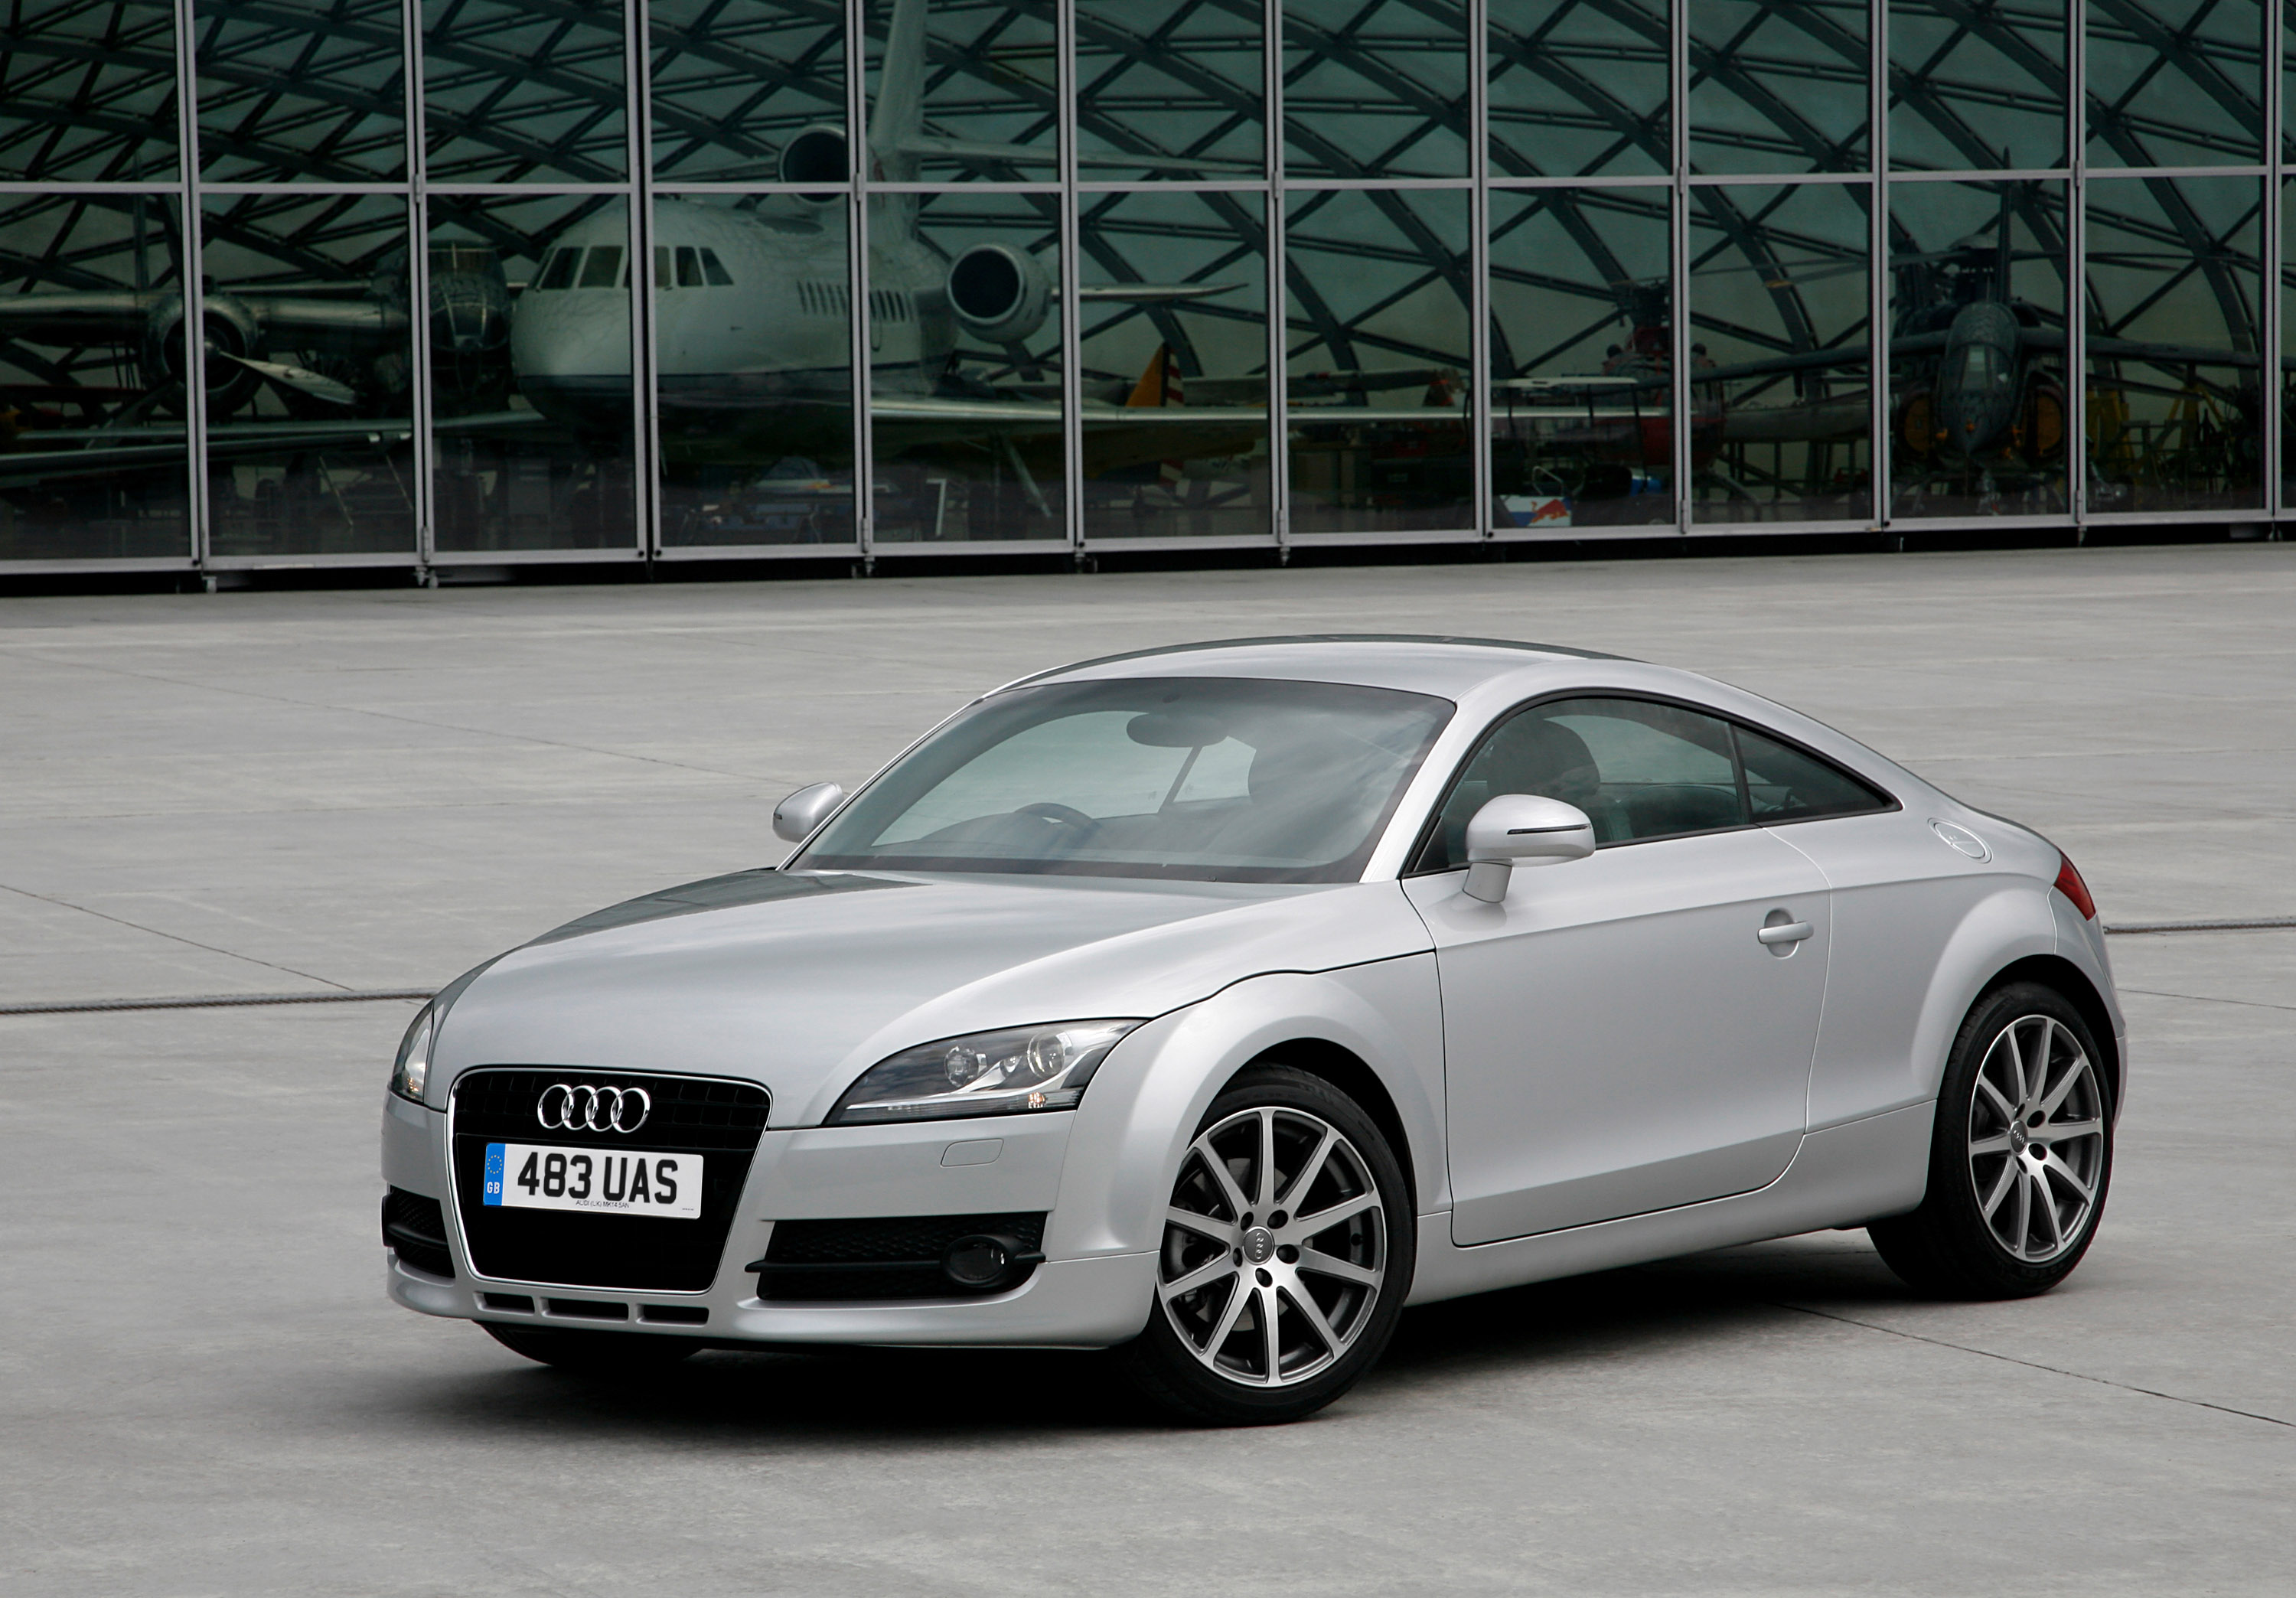 2006 Audi Tt Coupe 2 0 T Fsi Picture 39370